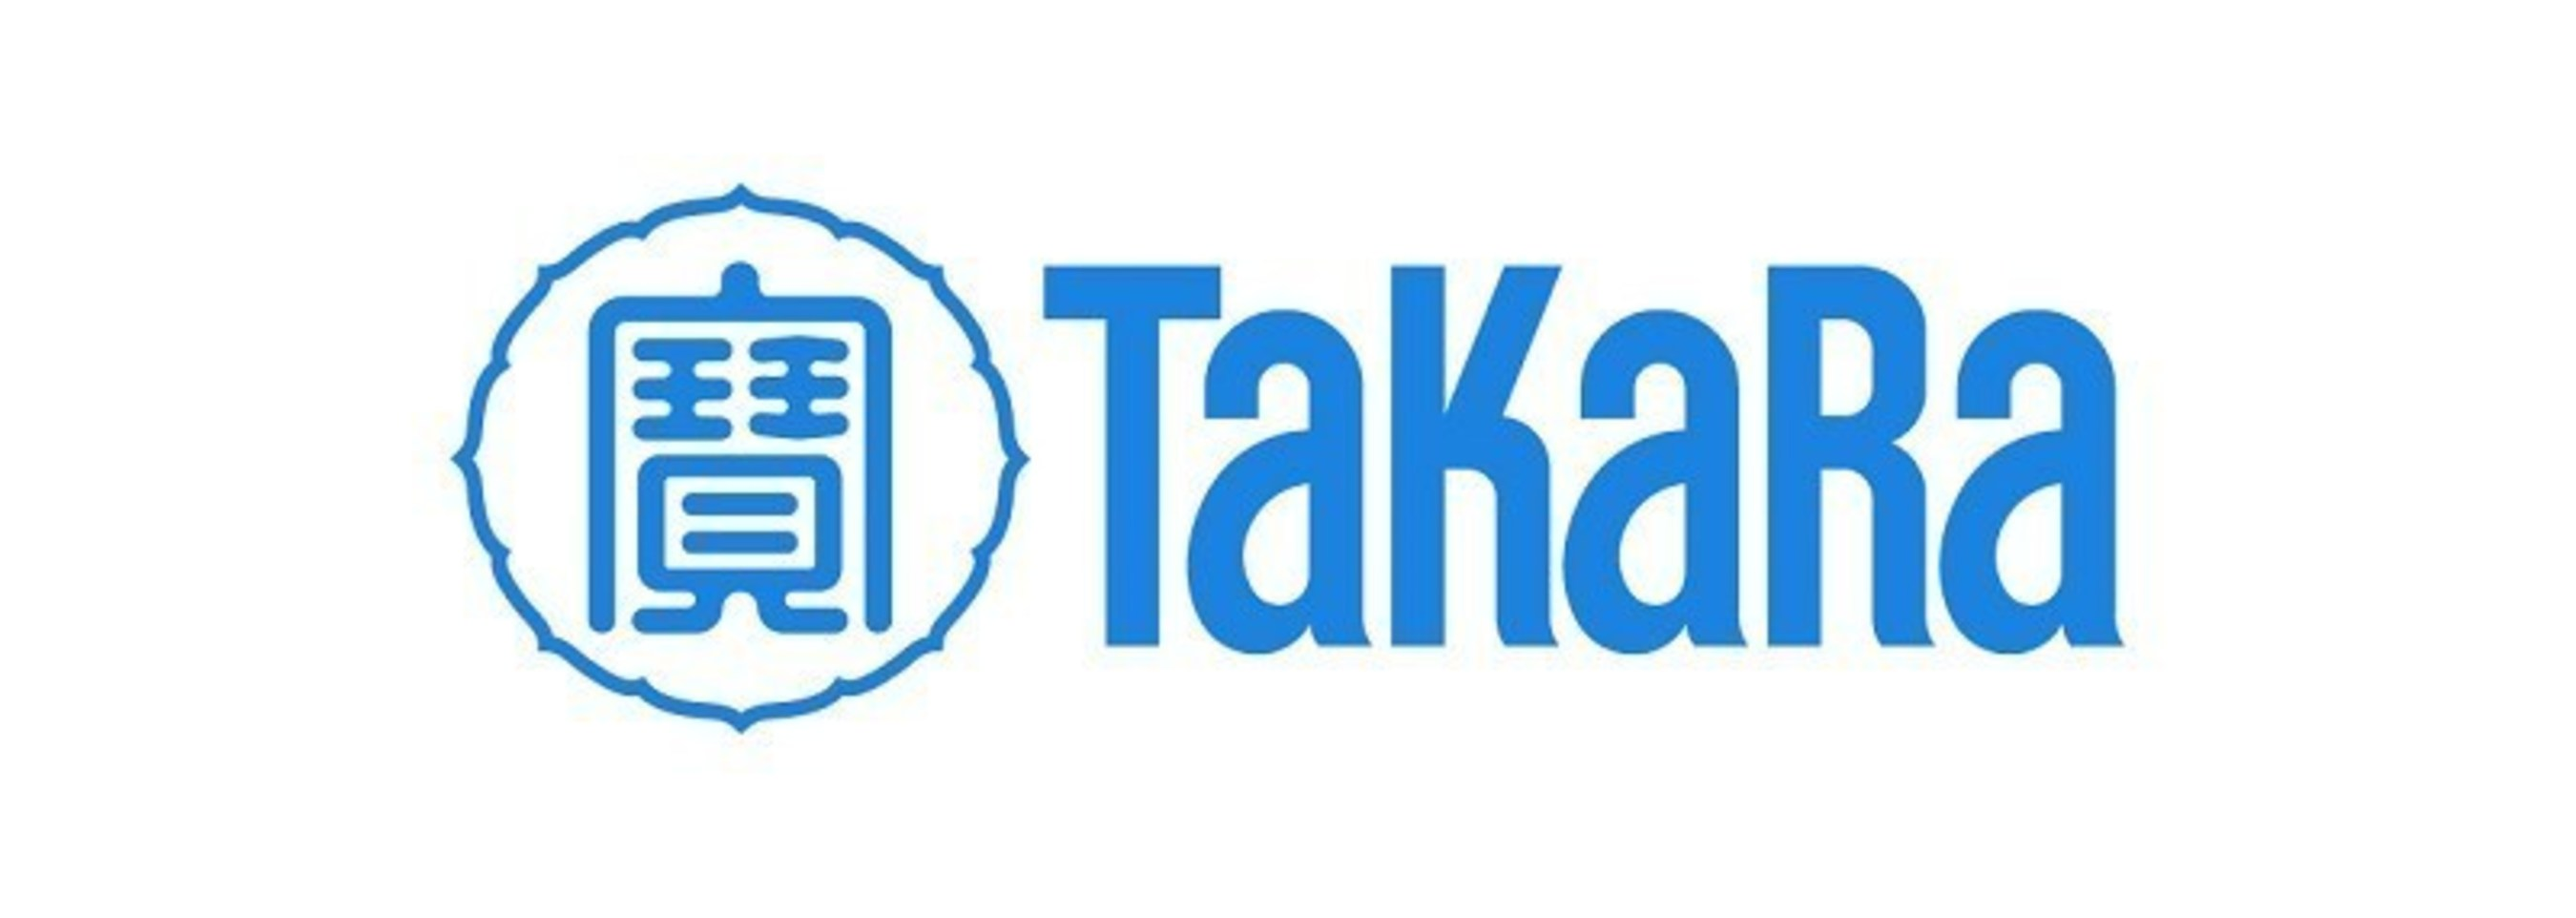 Takara Bio USA, Inc.(formerly Clontech Laboratories, Inc.), develops, manufactures, and distributes a wide range of life science research reagents under the Takara (R), Clontech(R) and Cellartis(R) brands. Learn more at http://www.clontech.com/